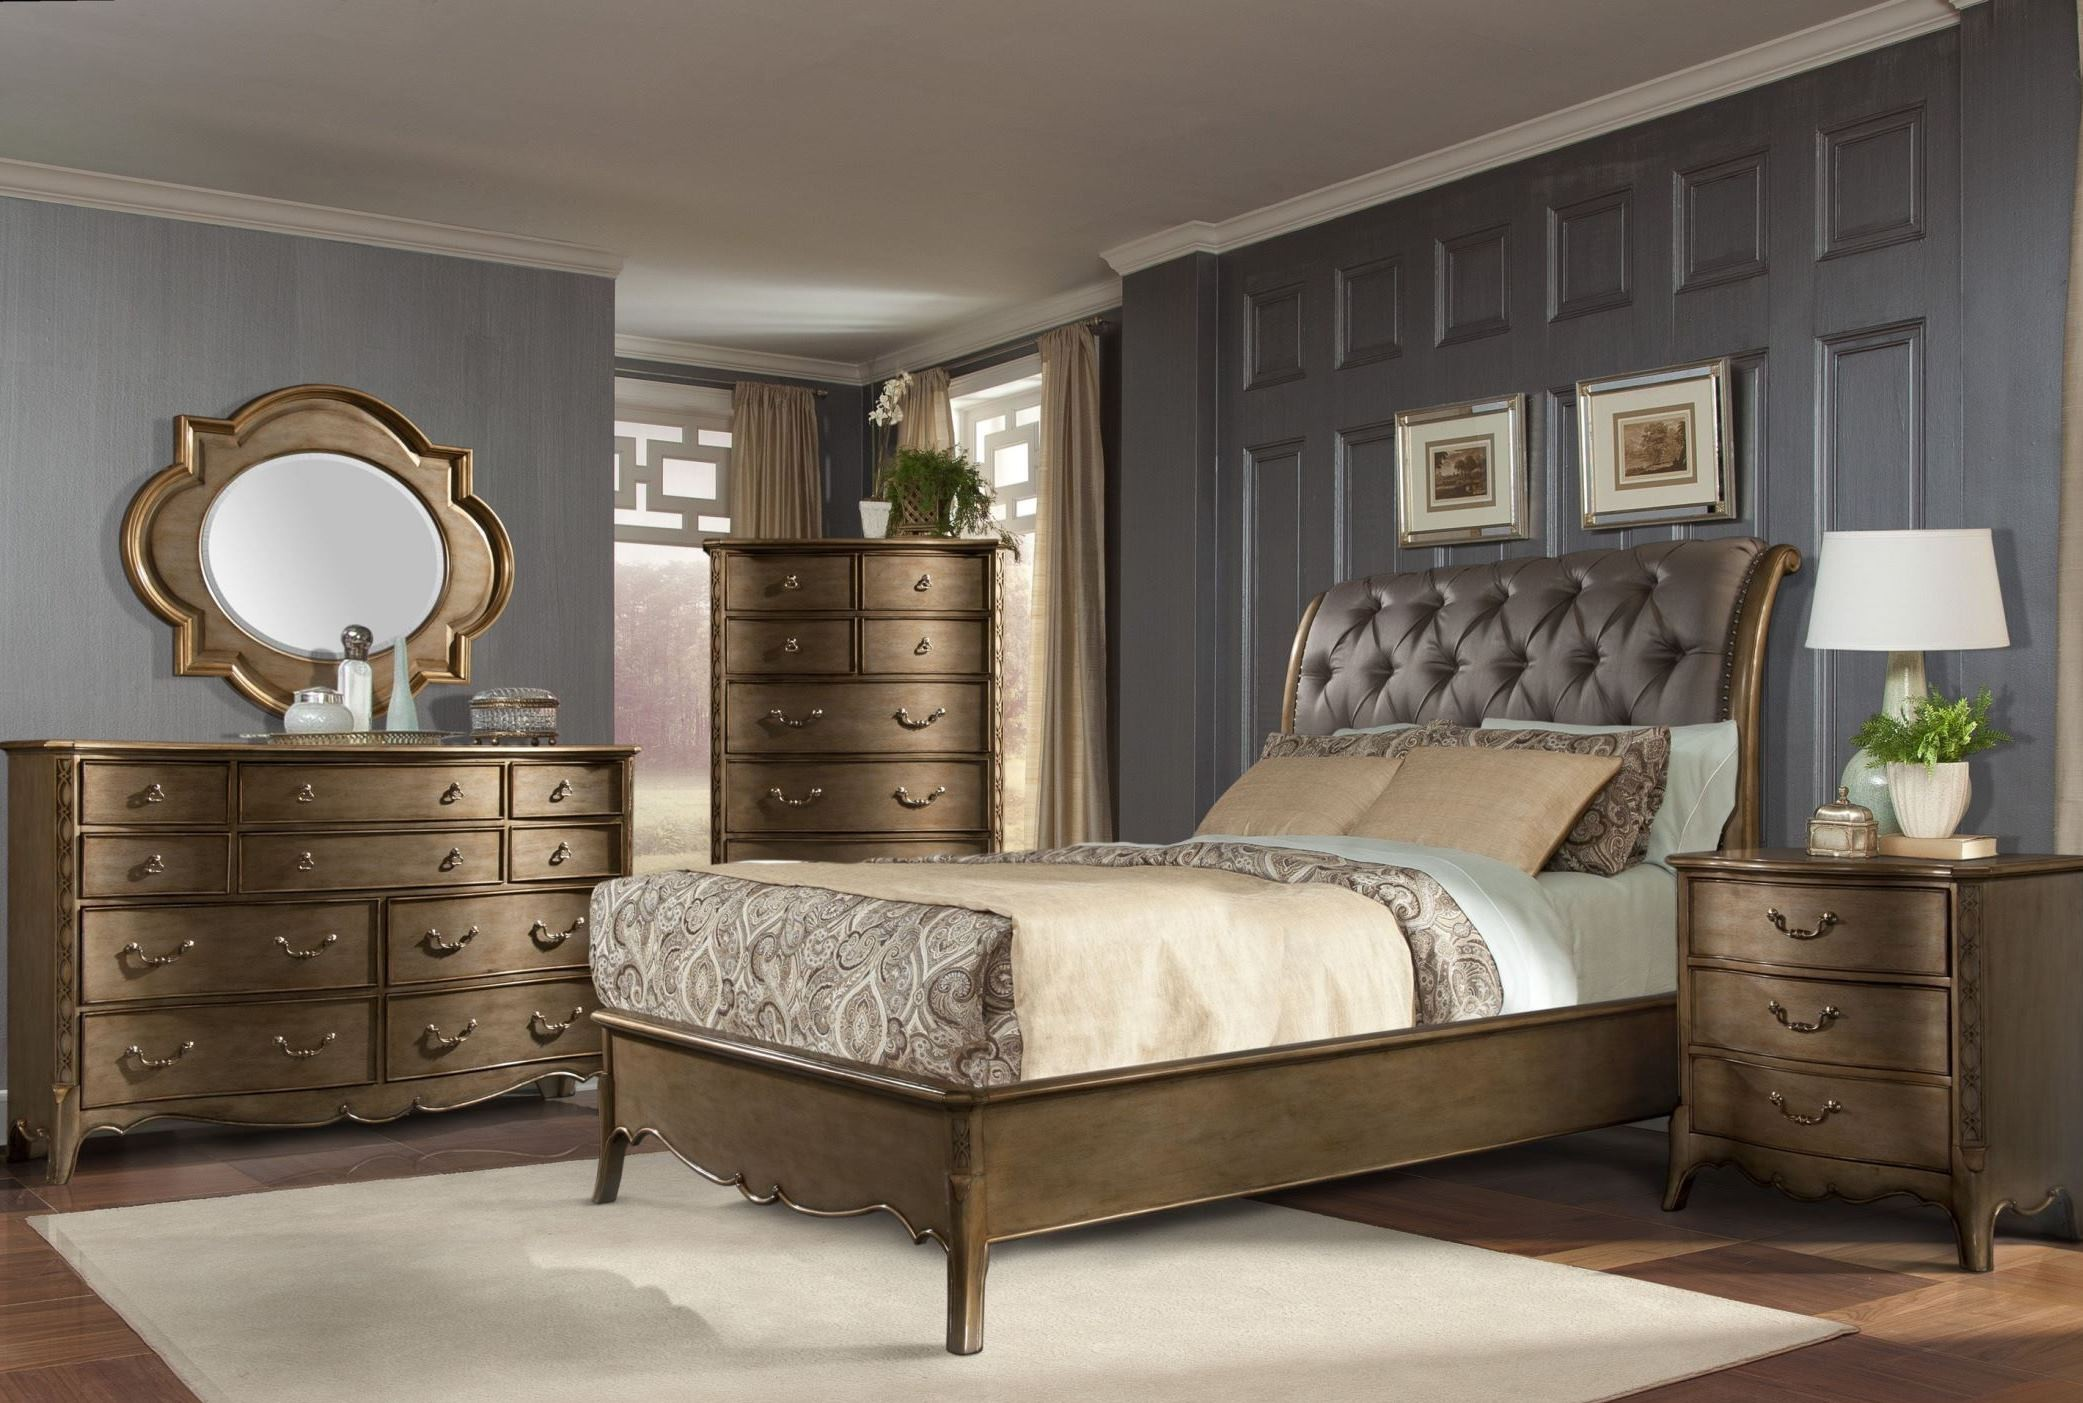 Chambord champagne gold sleigh bedroom set from Discount bedroom furniture dallas